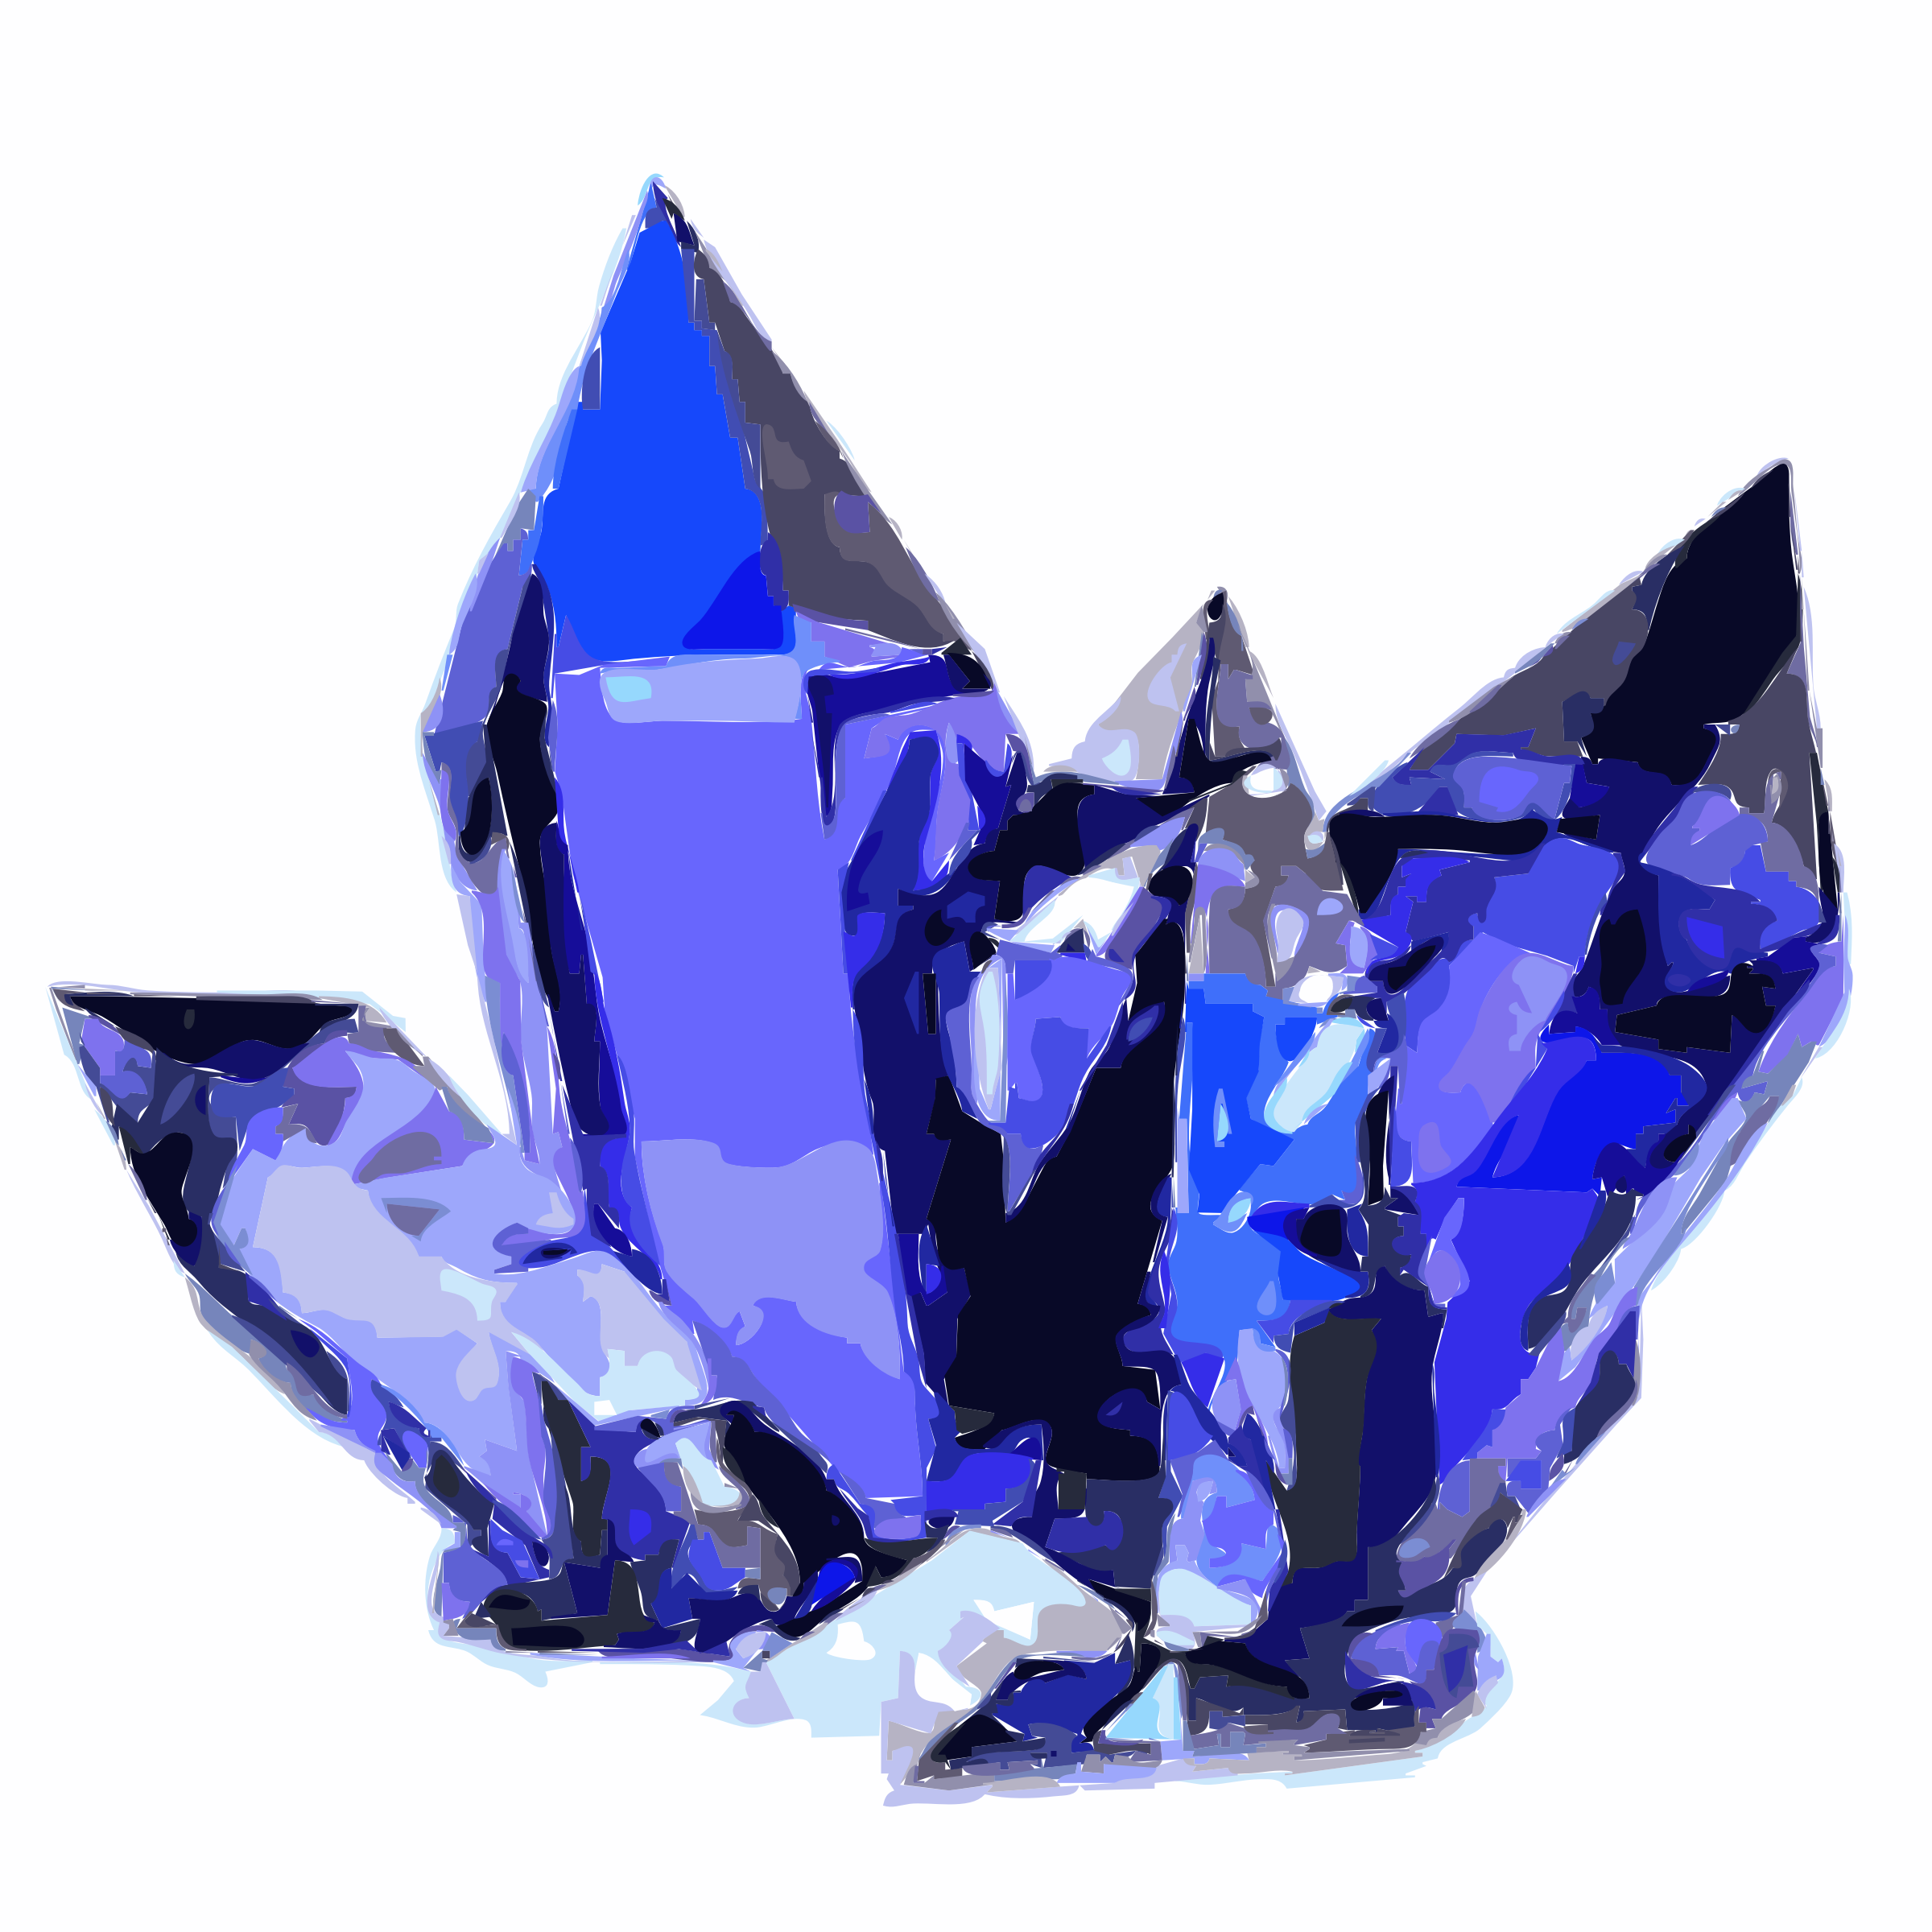 Blue Crystals Vector Clipart image.